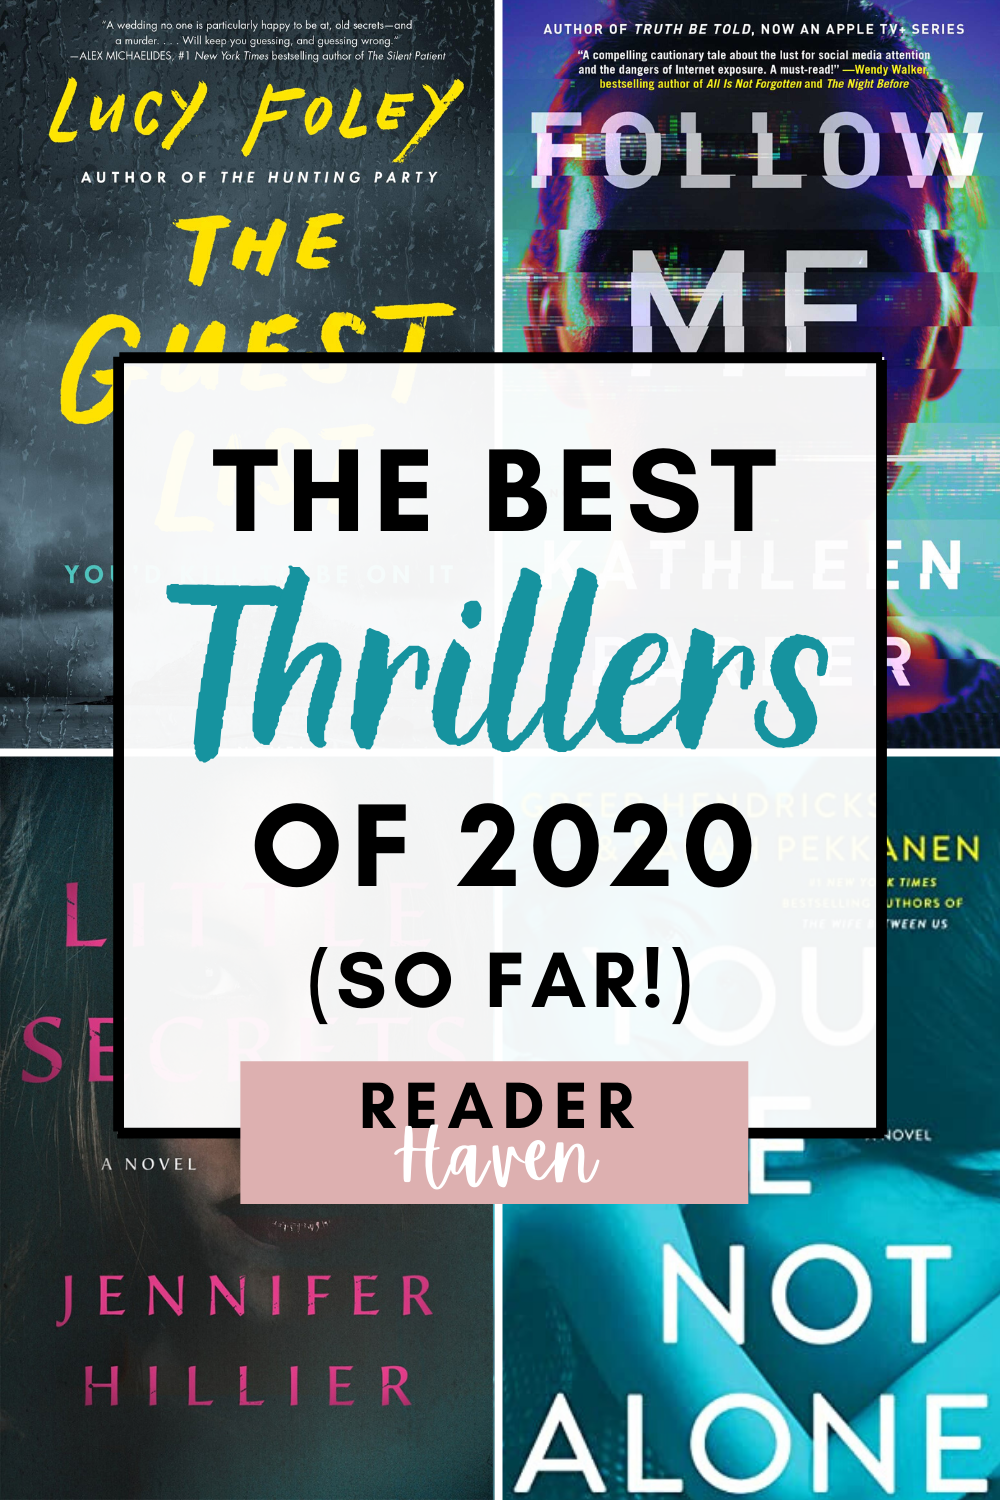 I've been on a huge thriller kick lately. So to my delight, this year's new book releases have been killing it in the thriller genre! Here are the best thrillers (books) in 2020 so far. #books #booklist #whatoread #bookstoread #thrillers